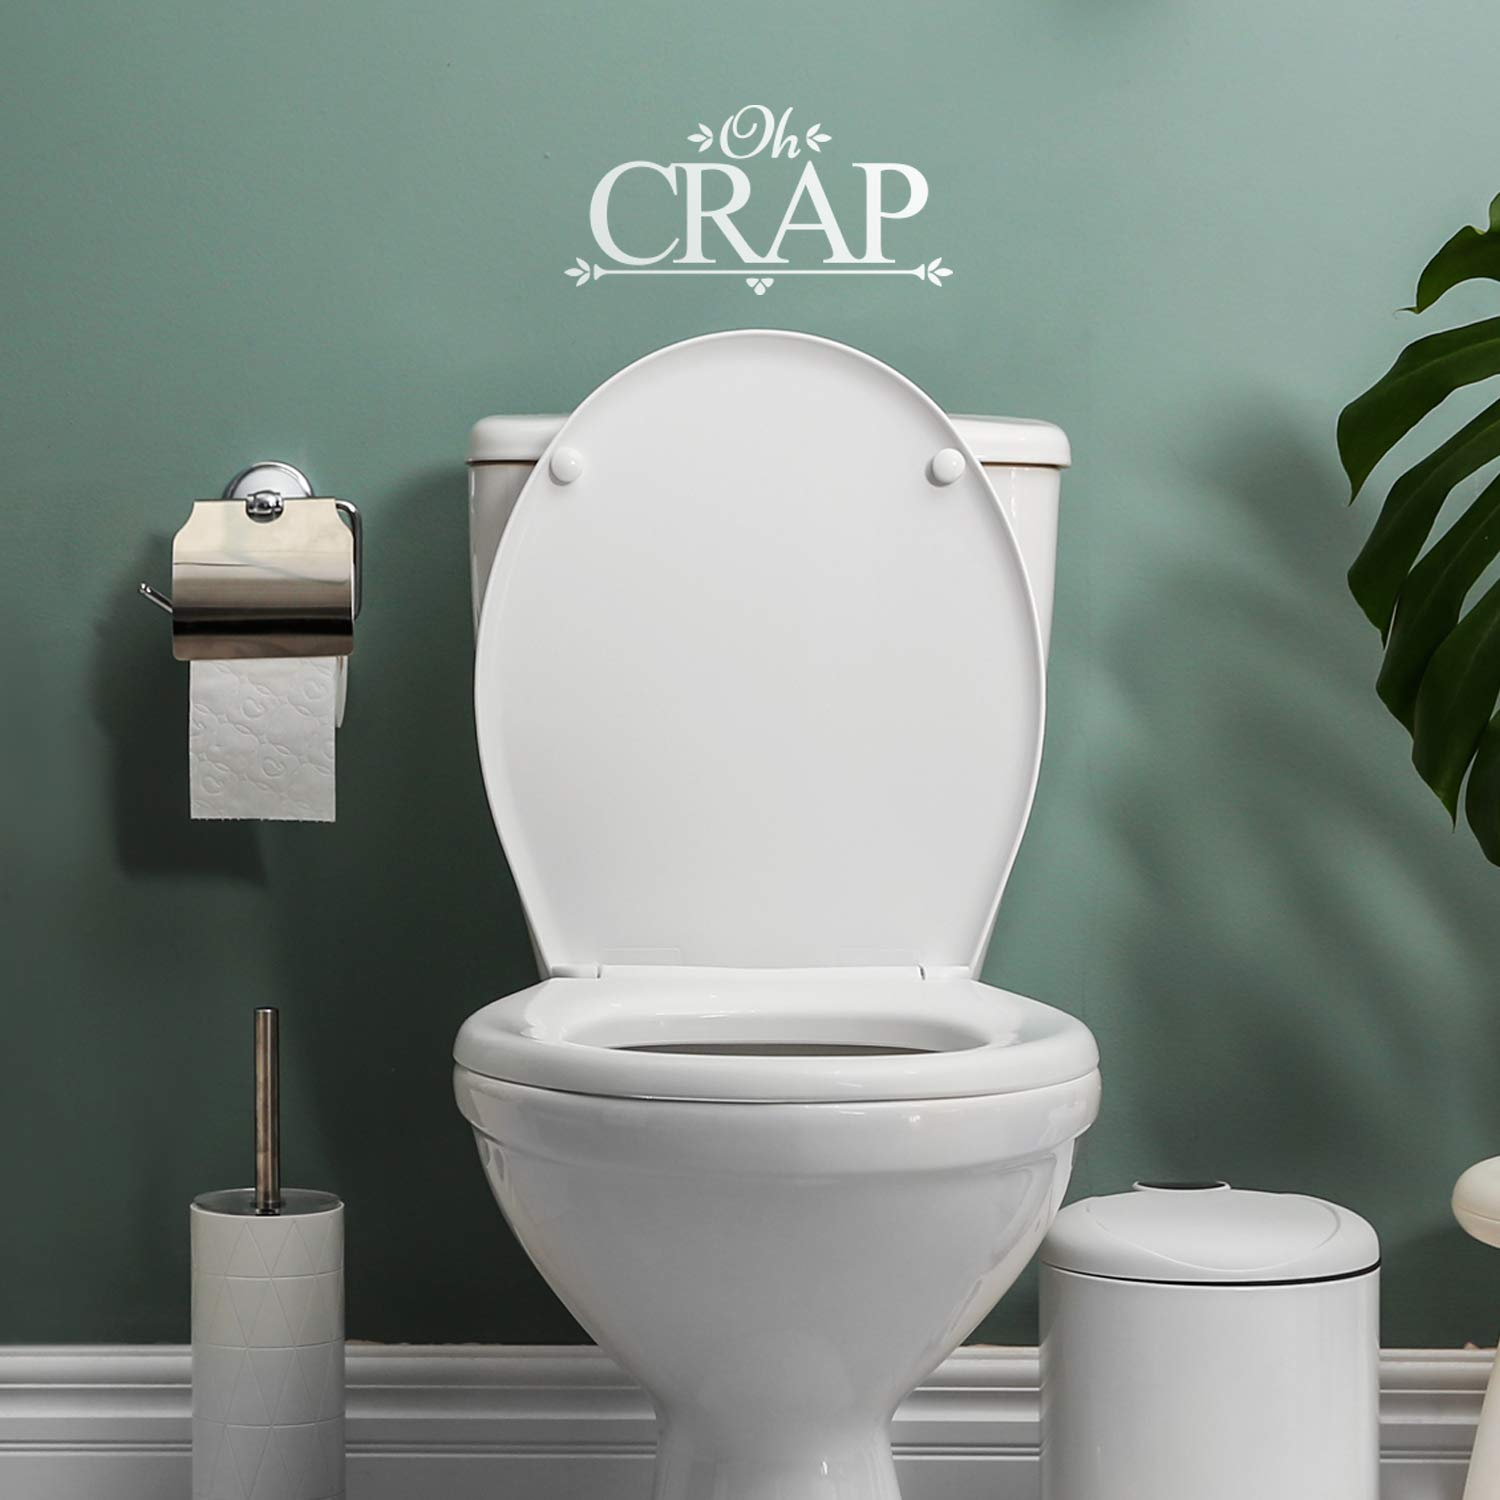 """Vinyl Wall Art Decal - Oh Crap - 6.32"""" x 13"""" - Funny Modern Witty Humorous Toilet Flushing Decoration for Household Home Bathroom Toilet Indoor Dorm Room Apartment Quote (6.32"""" x 13"""", White)"""